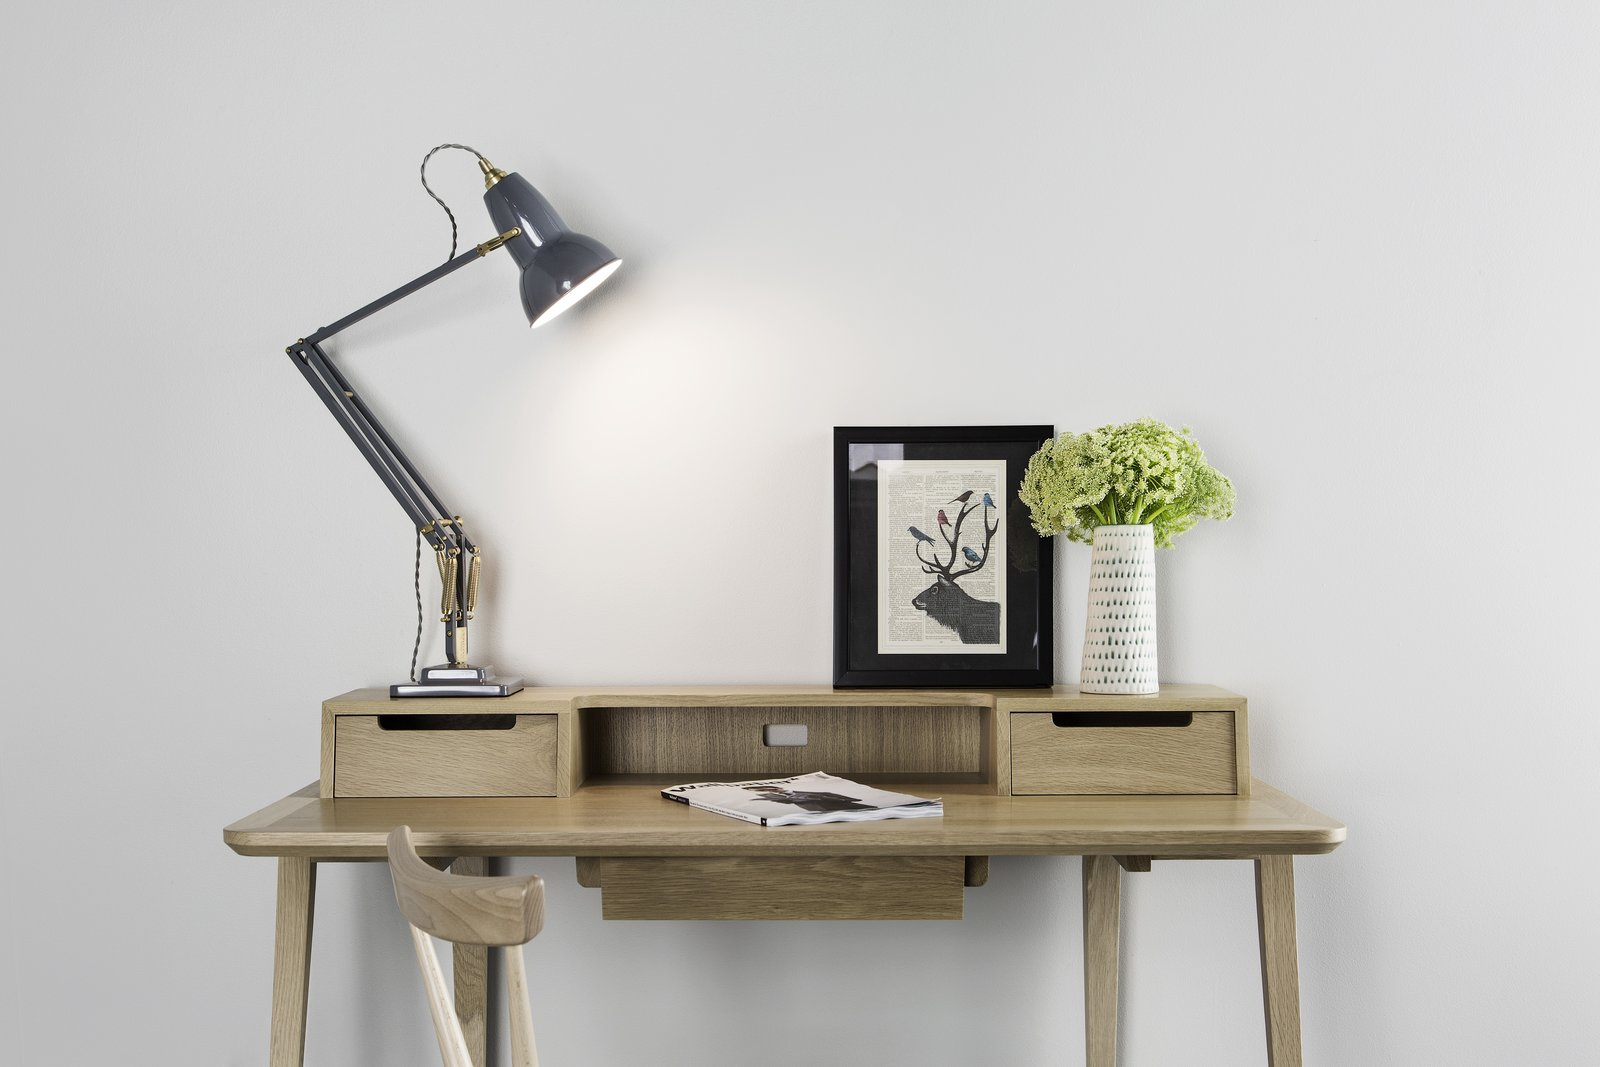 Office, Desk, Lamps, and Chair The newly released Original 1227 Brass Desk Lamp in Elephant Grey is at once minimalist and statement making.  Classic Desk Lamp from 1934 Remade with Modern Details by Marianne Colahan